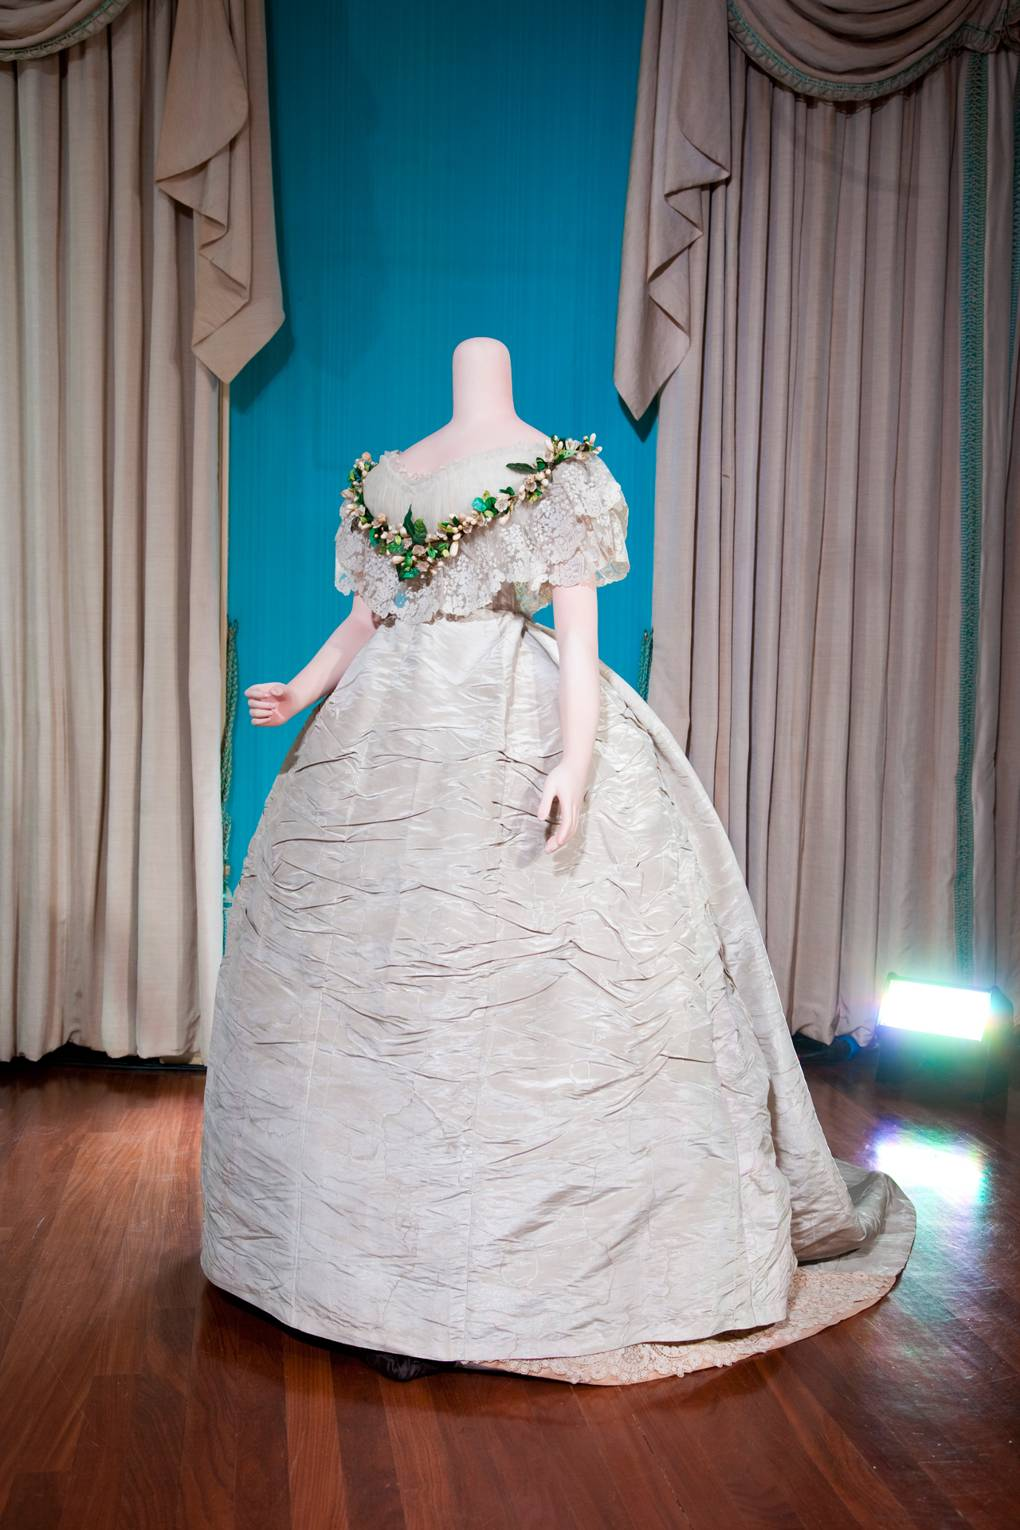 Royal wedding dresses from history - Queen Victoria, Princess ...